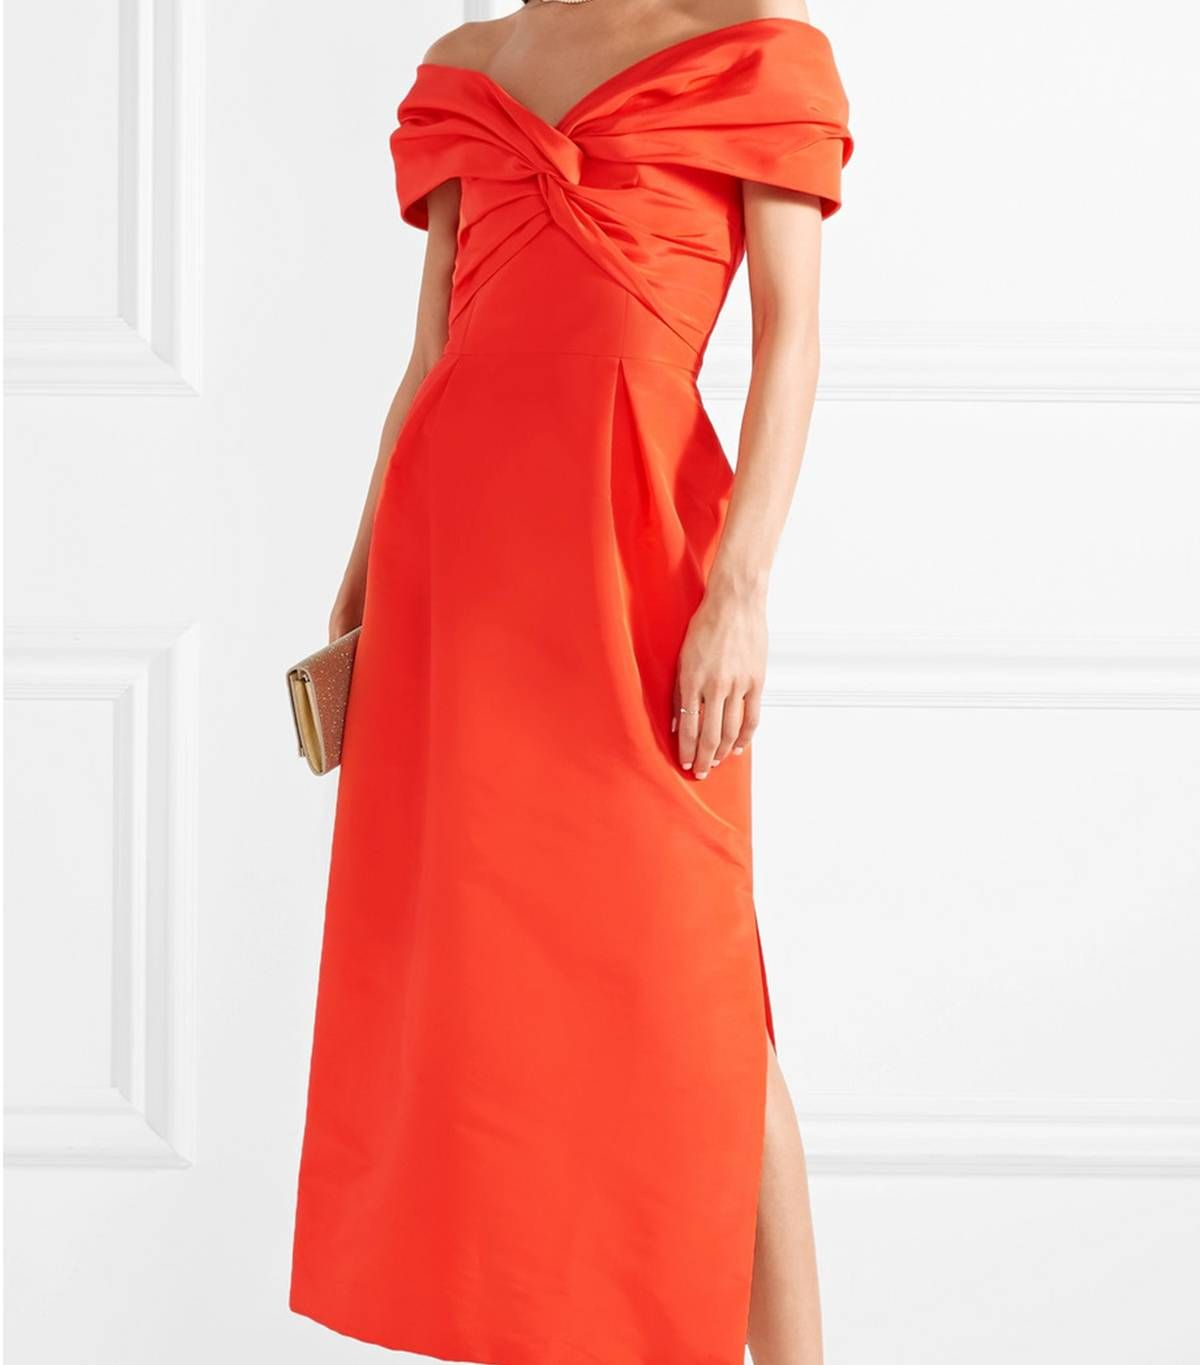 Can You Wear Red To A Wedding Wearing Red How To Wear What To Wear To A Wedding